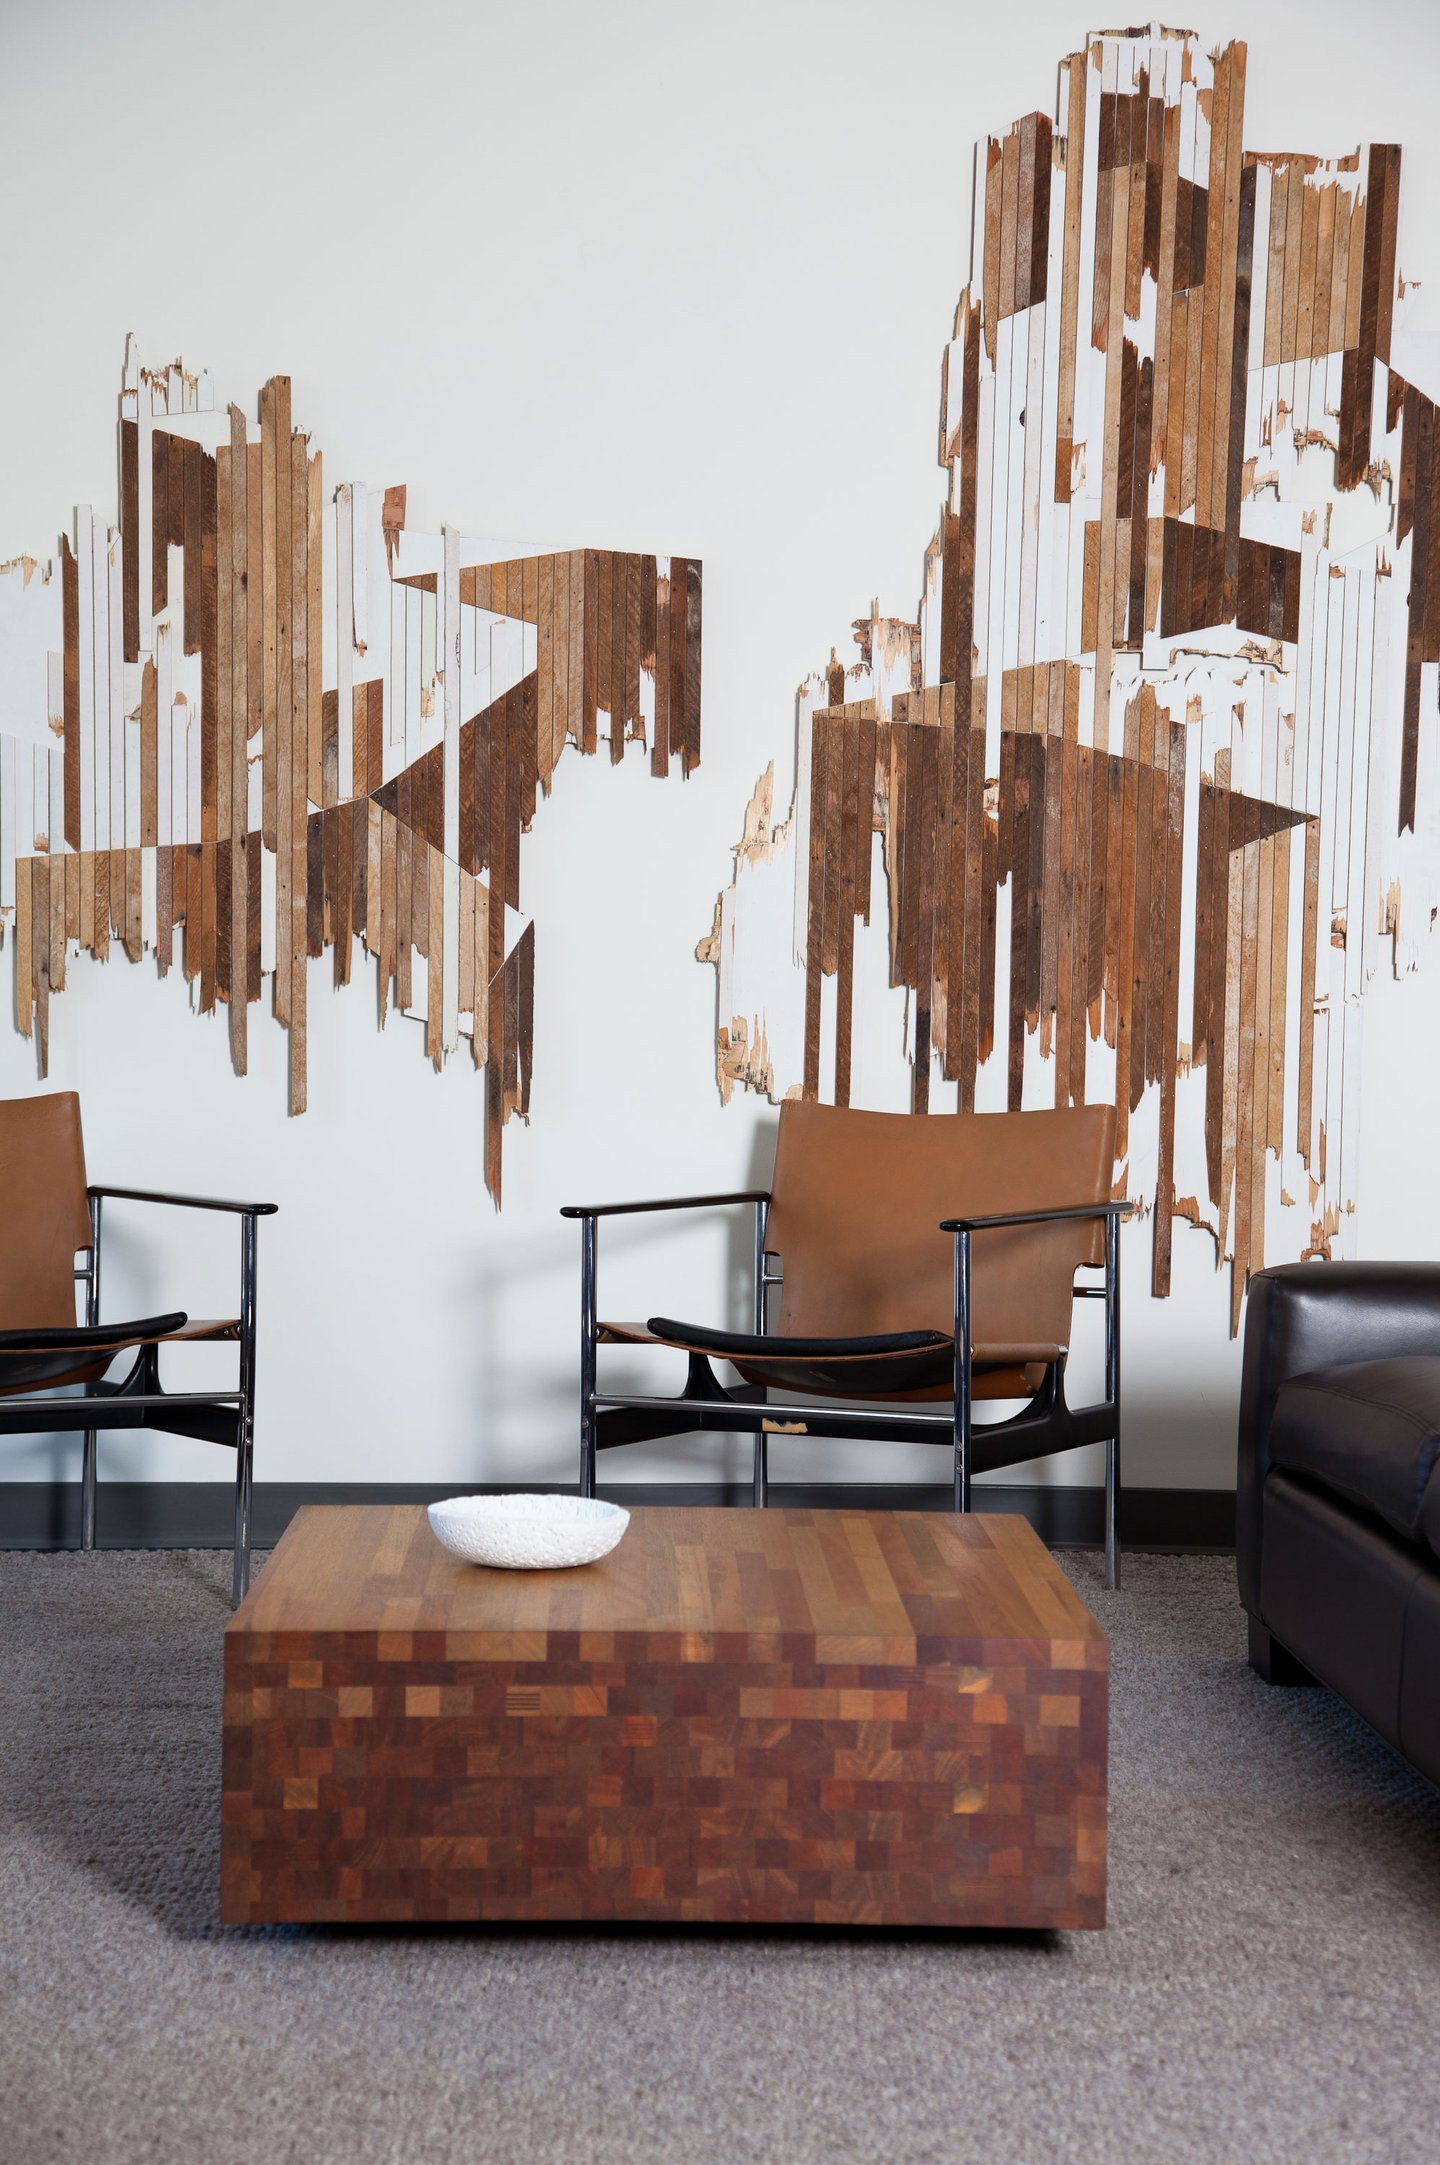 Culture Wall fice s Custom Spaces